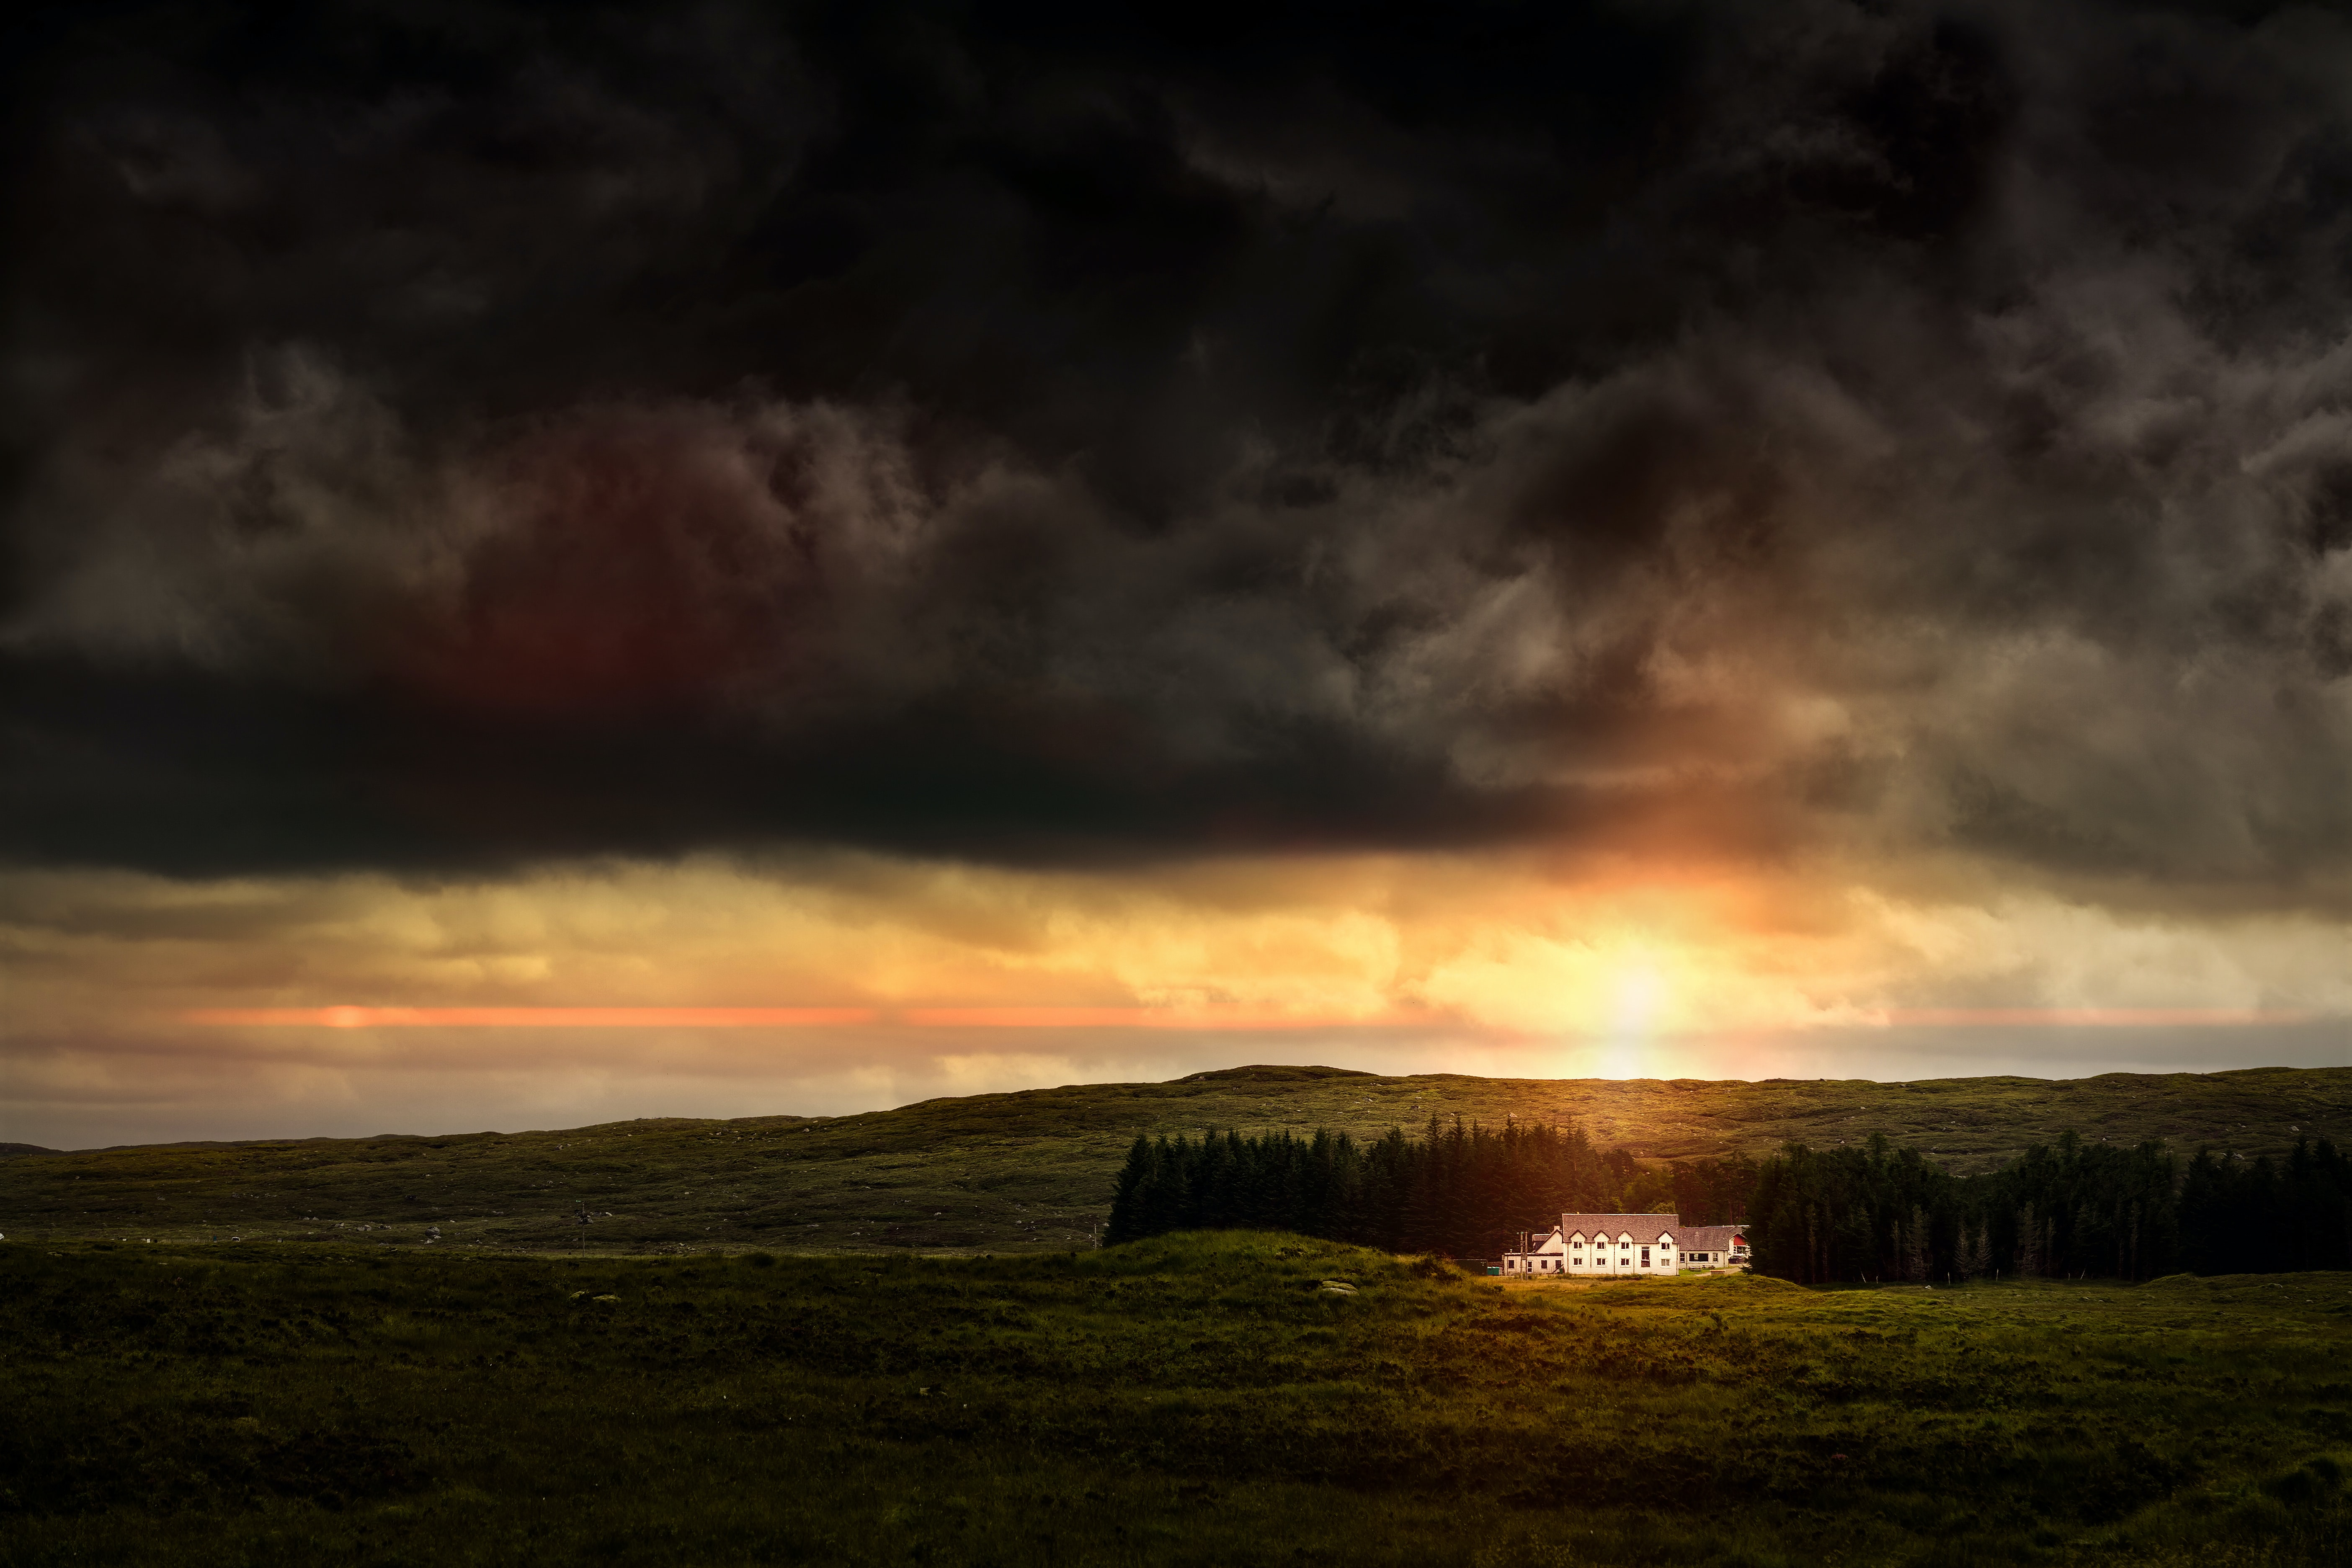 An elegant white building near a copse of trees during sunset in Glencoe